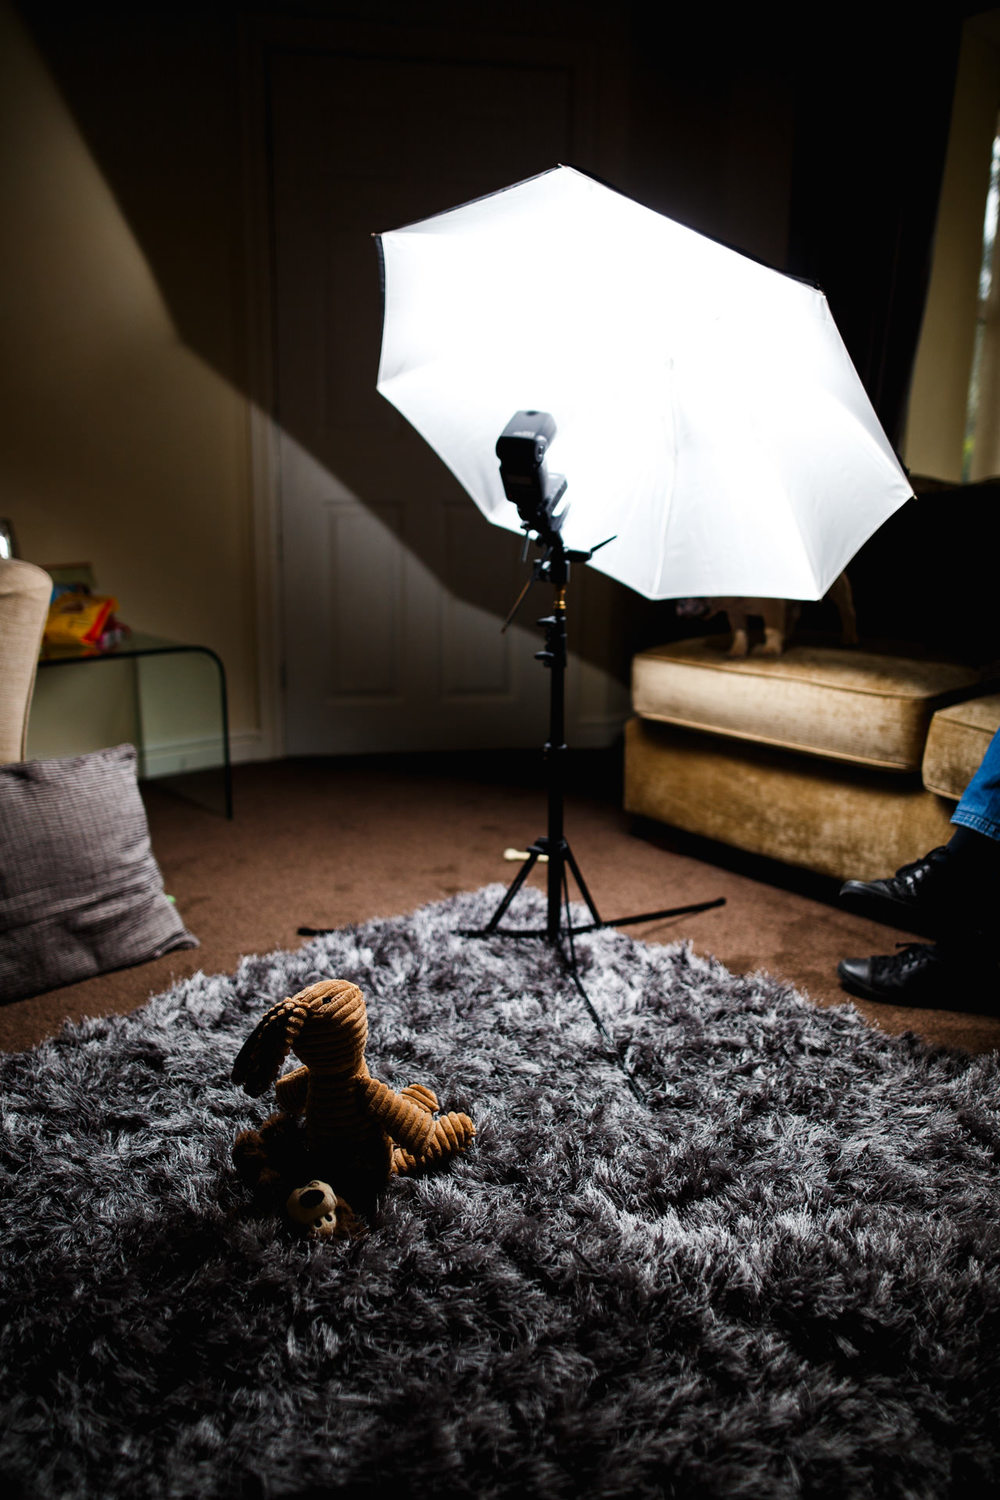 My (relatively) modest lighting equipment - a flash is wirelessly triggered from my camera, firing into my photo-umbrella which bounces back a softer quality of light.